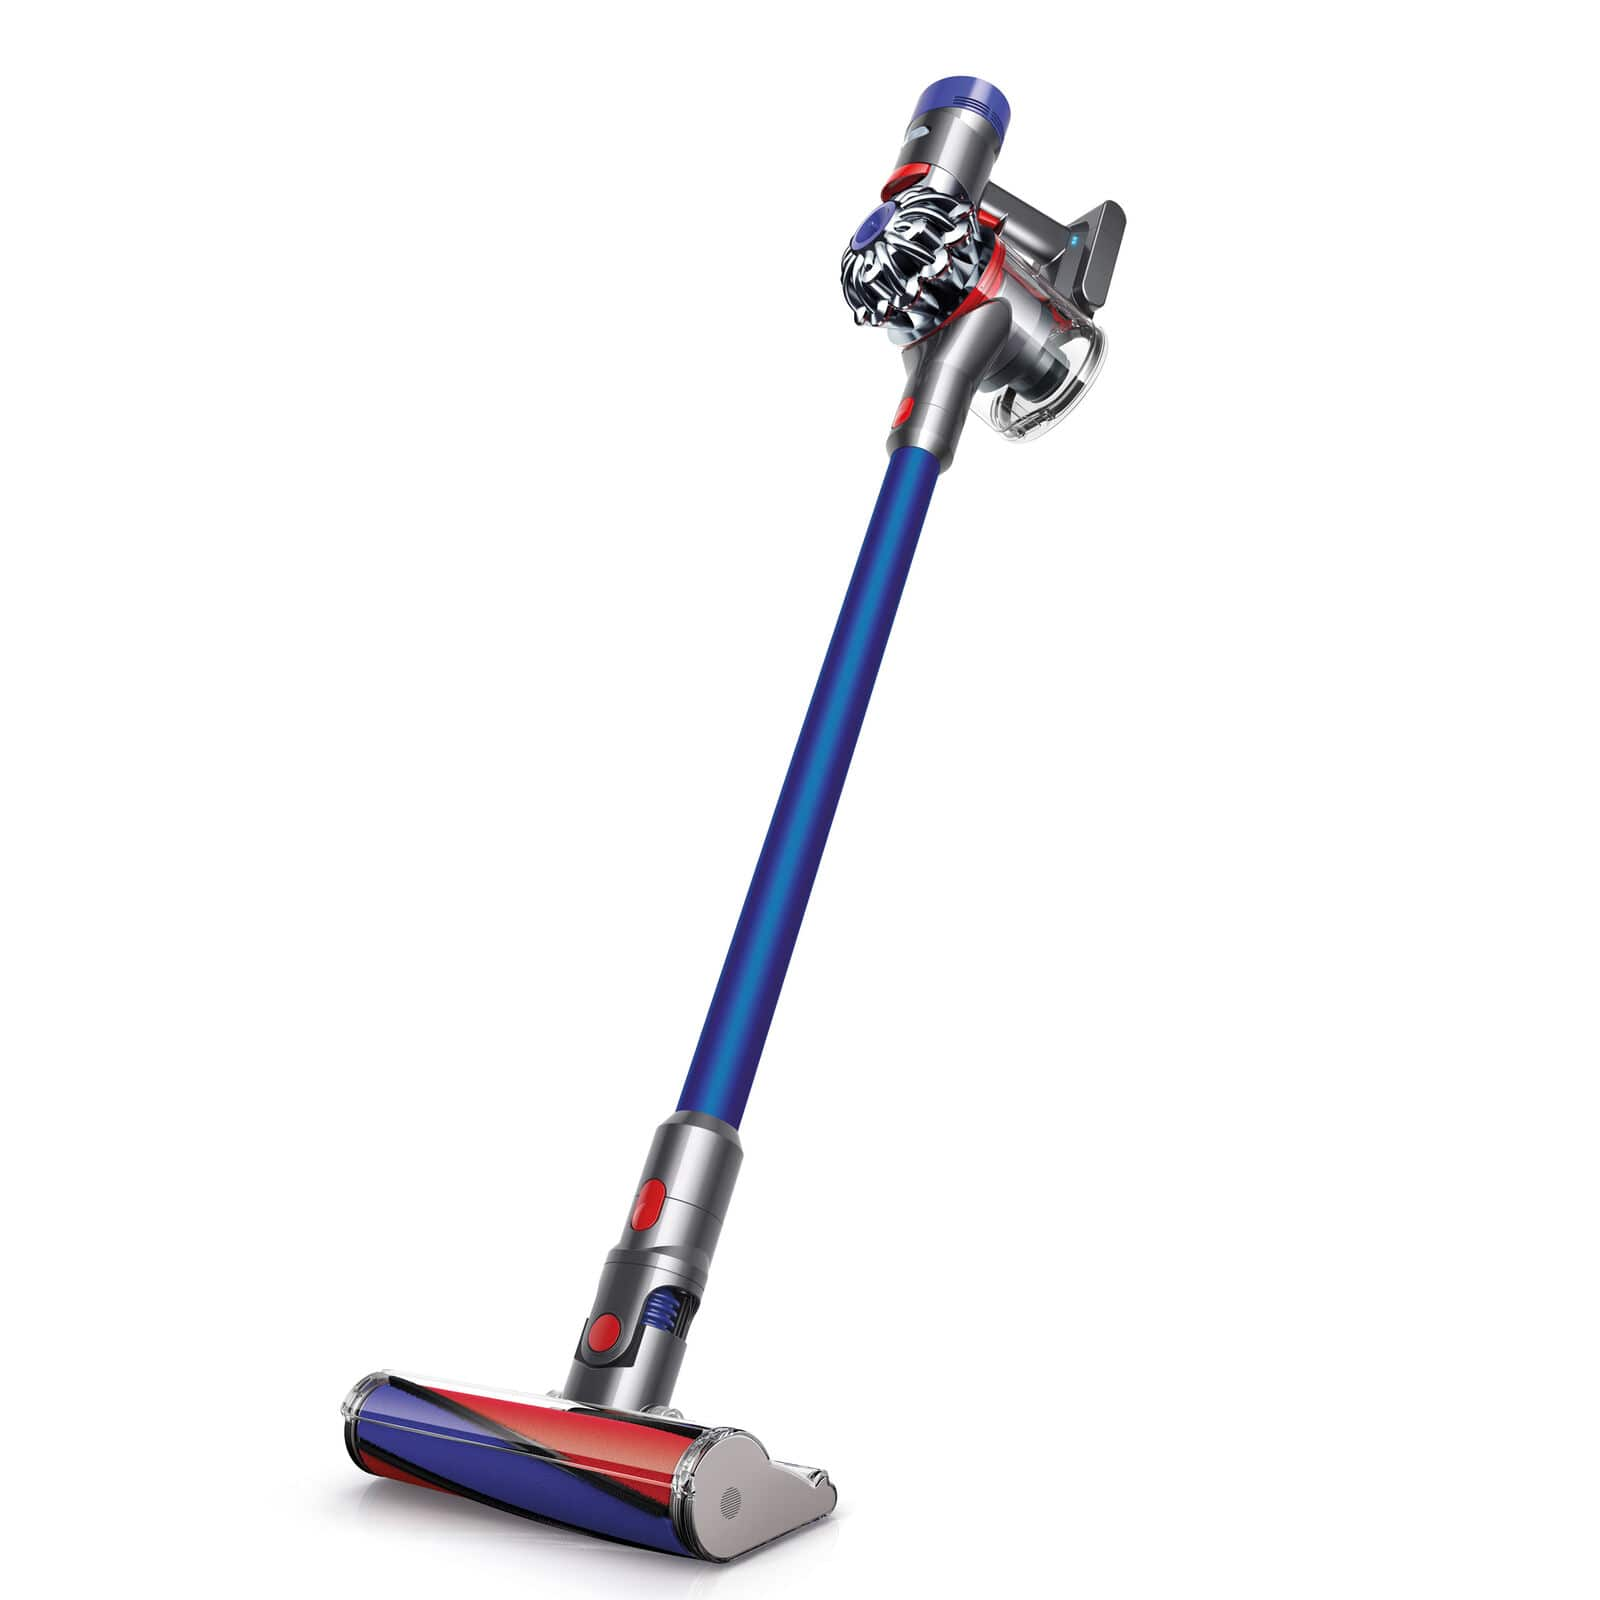 Dyson V7 Fluffy HEPA Cordless Vacuum Cleaner | Blue | New for $199.99 + Free Shipping